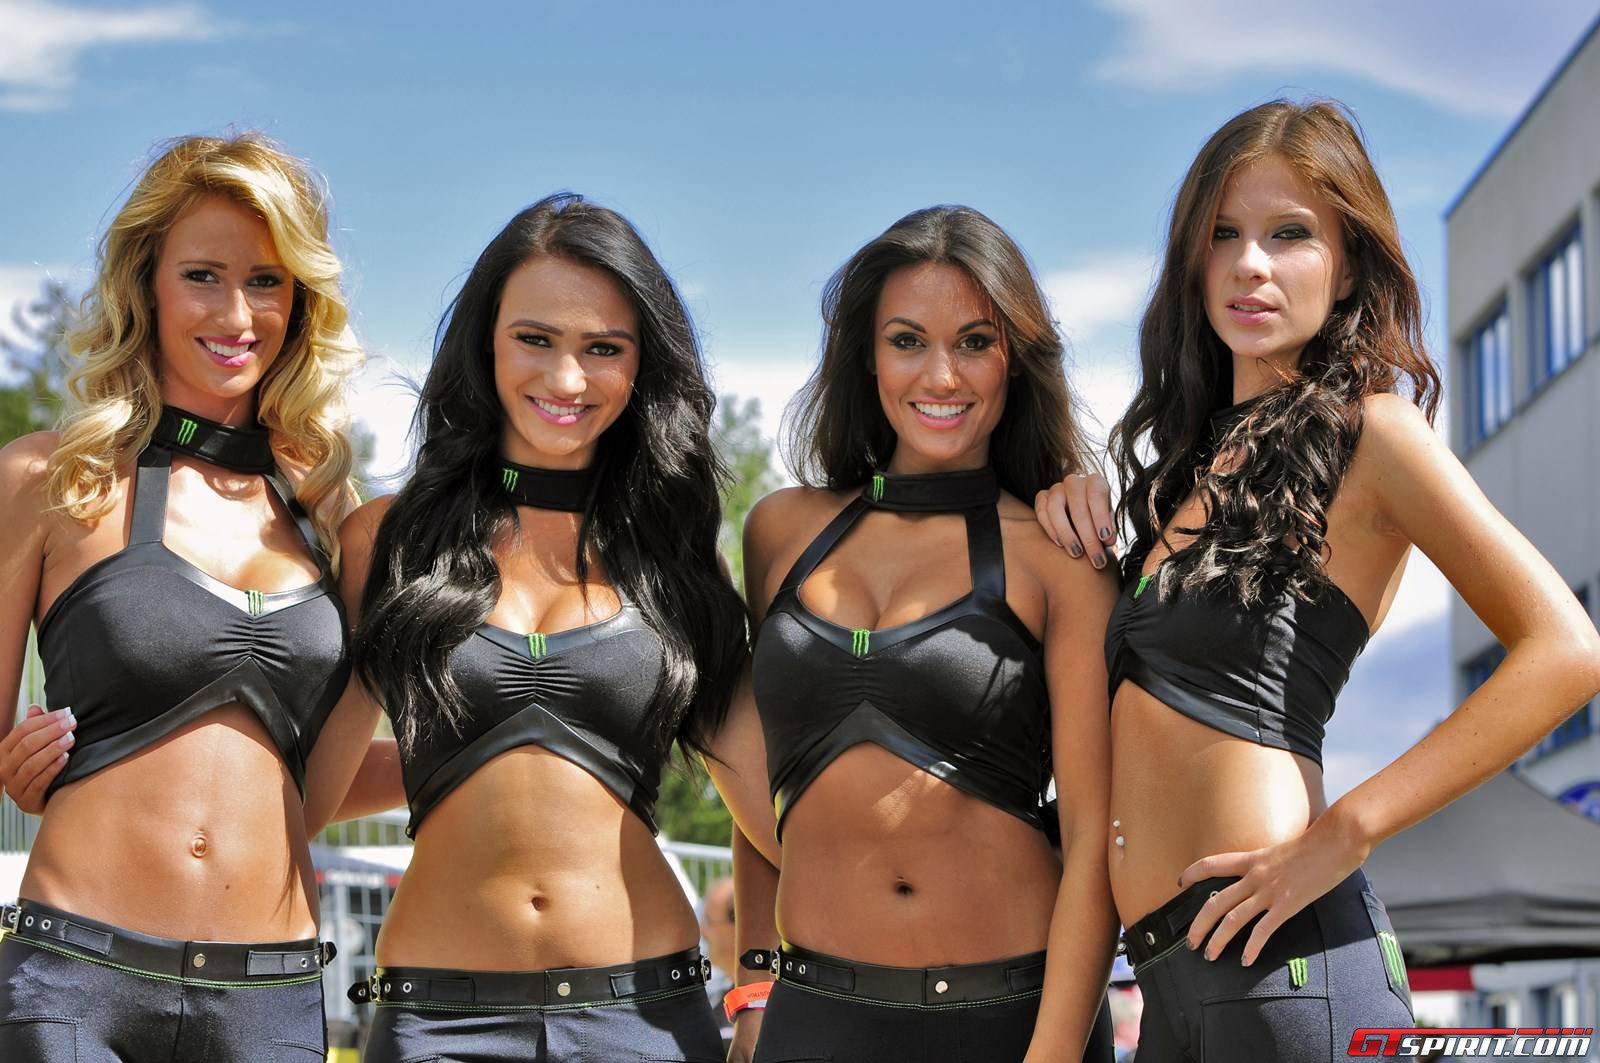 Cars And Girls Monster Energy Girls At Rallycross Austria -6998